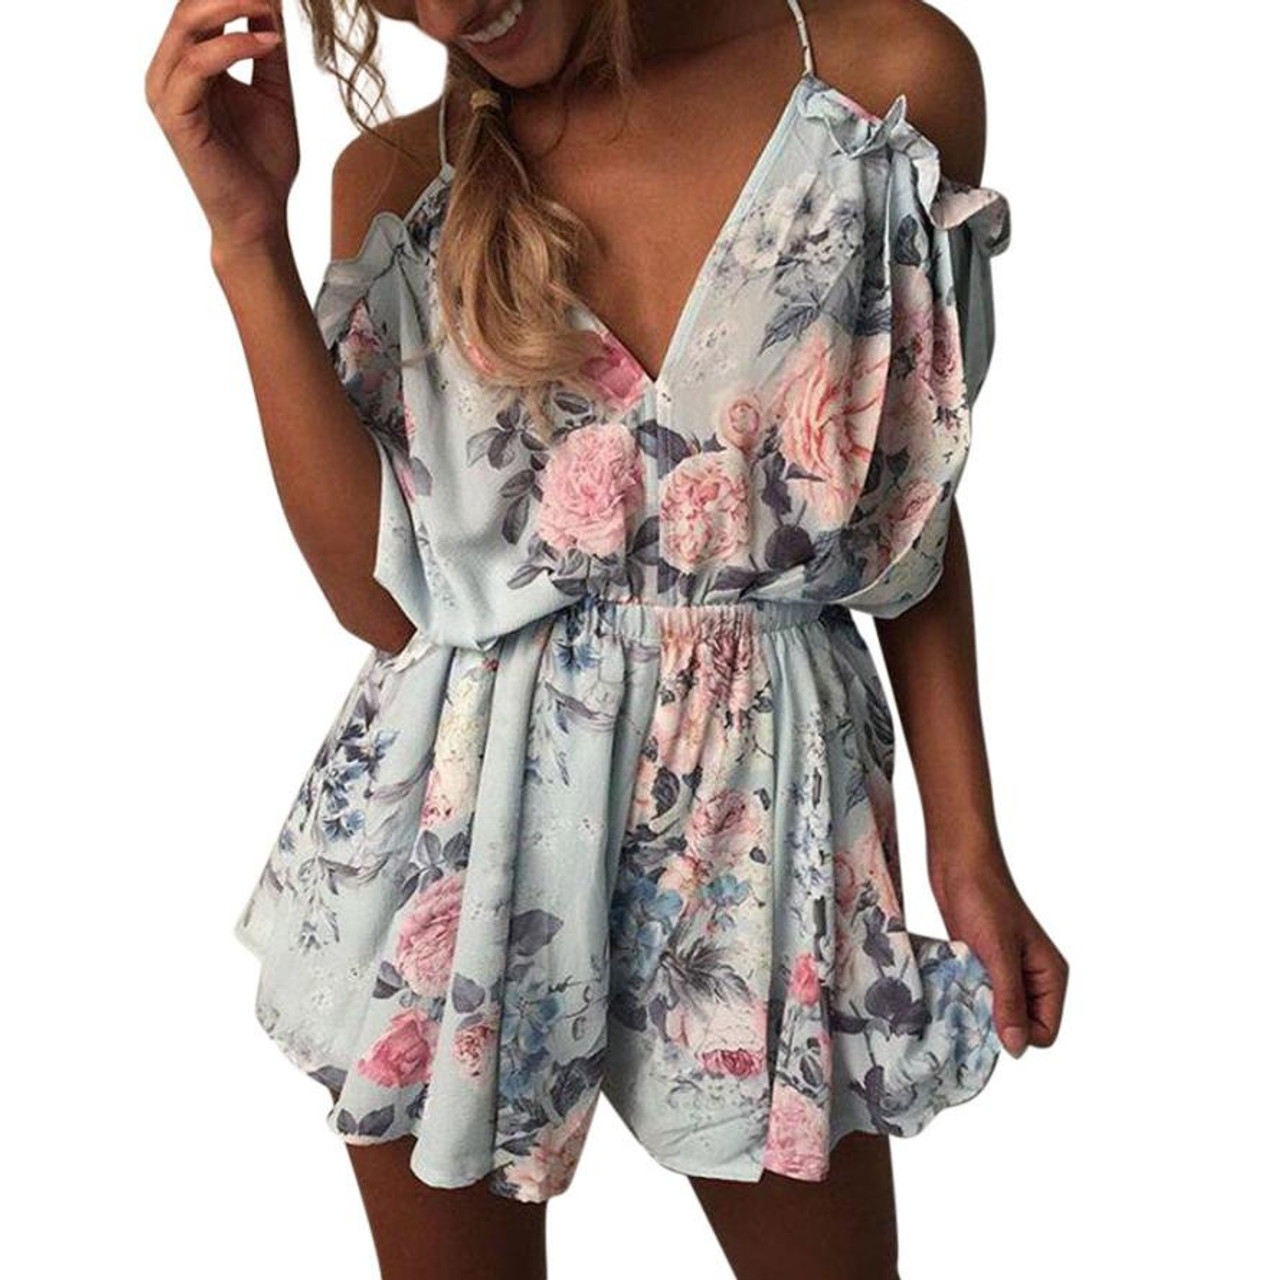 95f0ee512c1e Summer Chiffon Jumpsuit Women Sexy Off Shoulder V-Neck Floral Printed  Rompers Ladies Beach Style ...